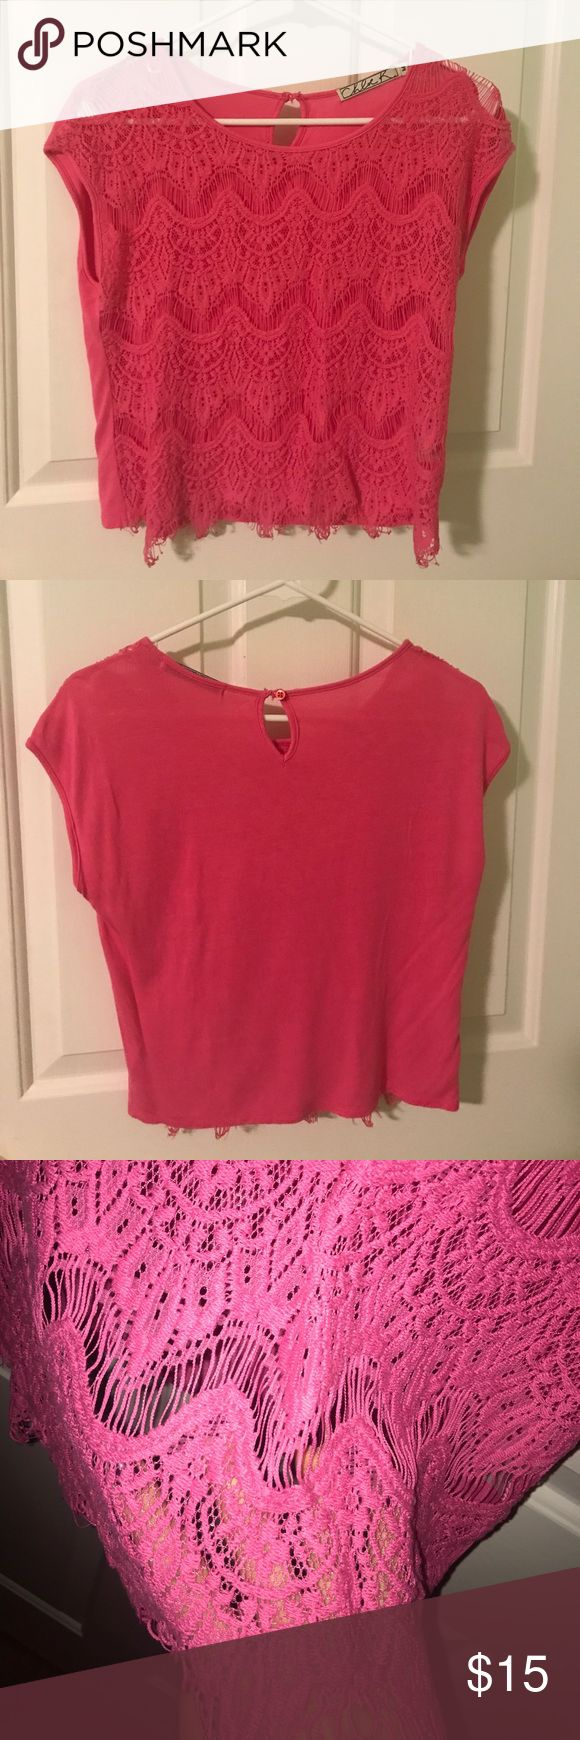 Pink Crochet Tee Great condition! See through in the front and covered in the back. I have long torso so it falls around my belly button if that helps lol Chloe K Tops Tees - Short Sleeve